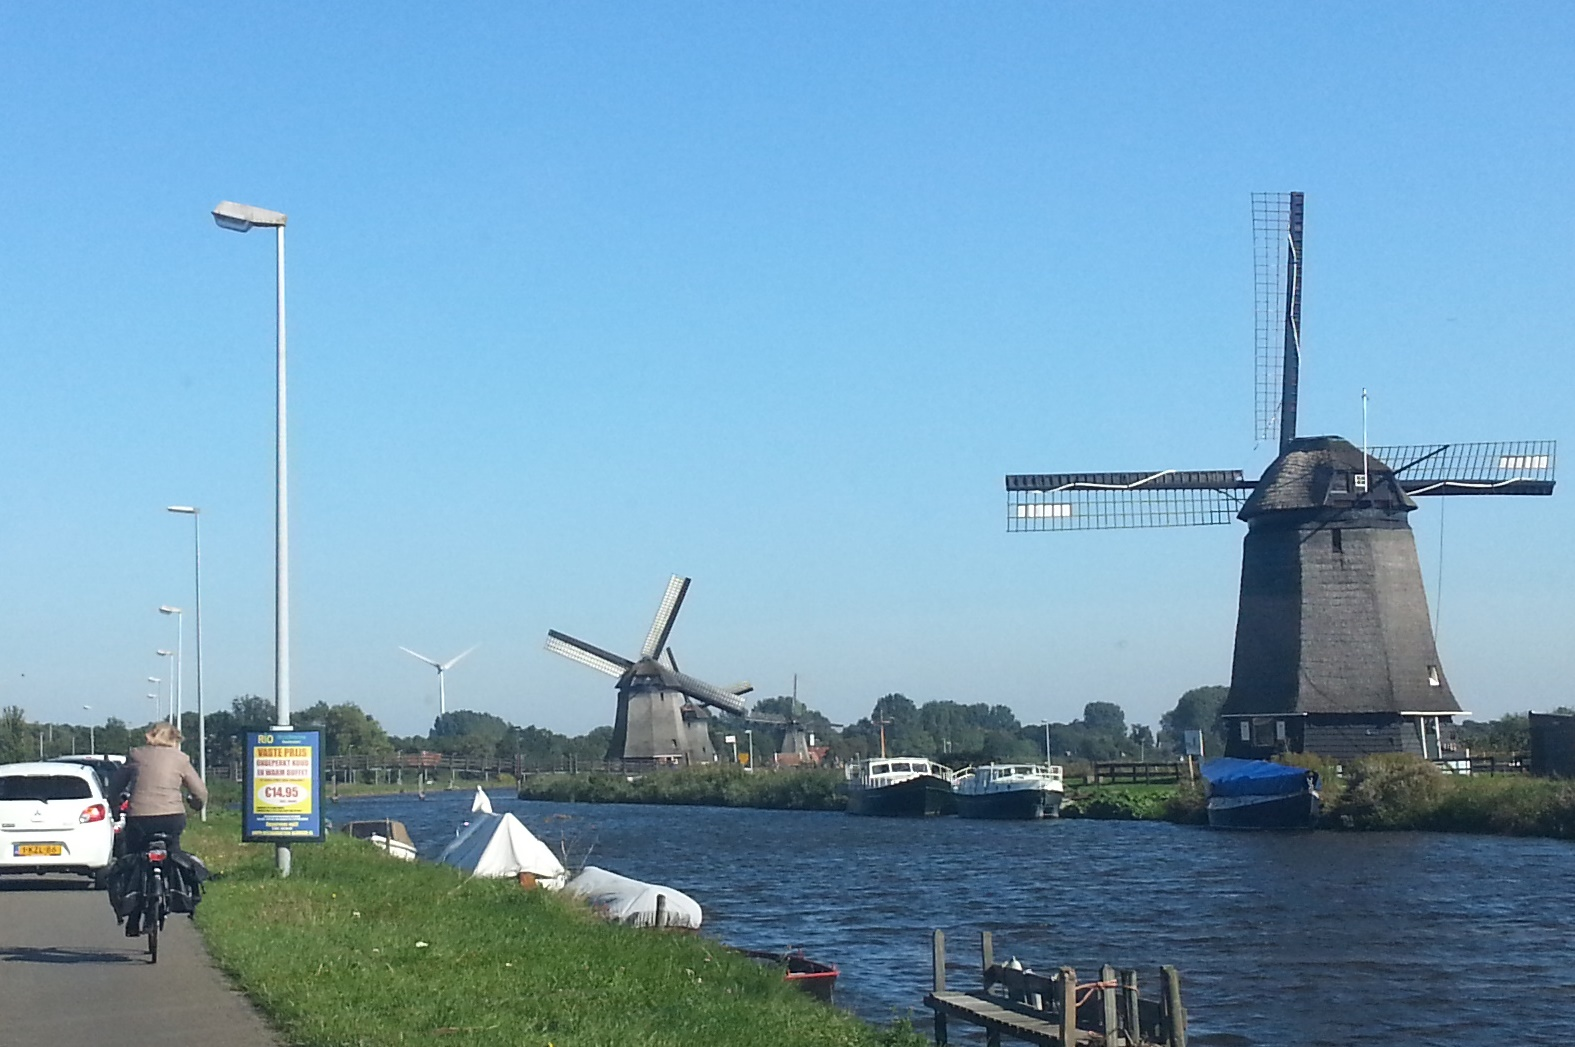 Windmills, old and modern